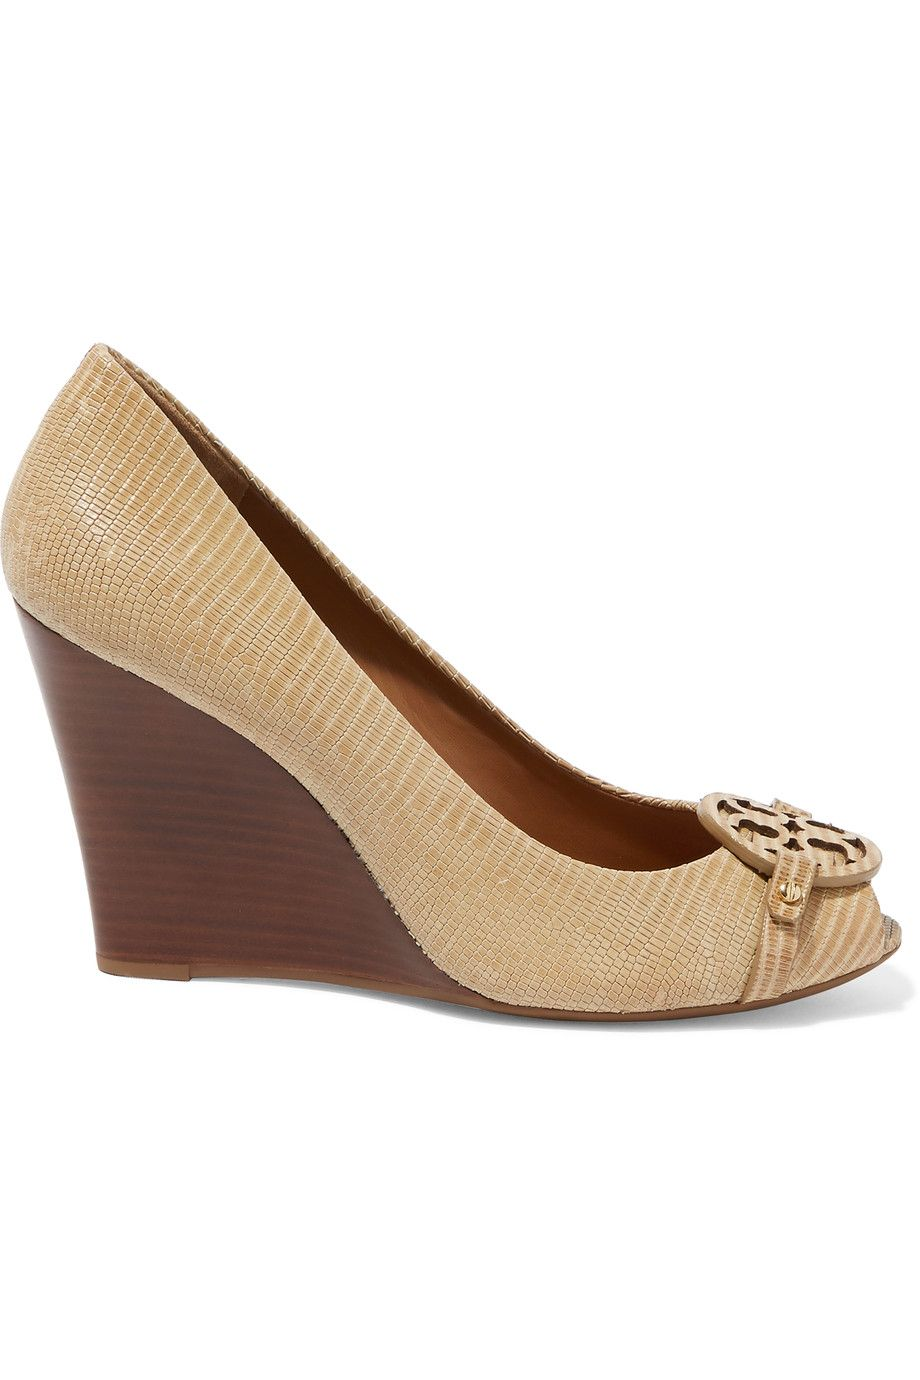 Tory Burch Mini Miller croc-effect leather wedge pumps